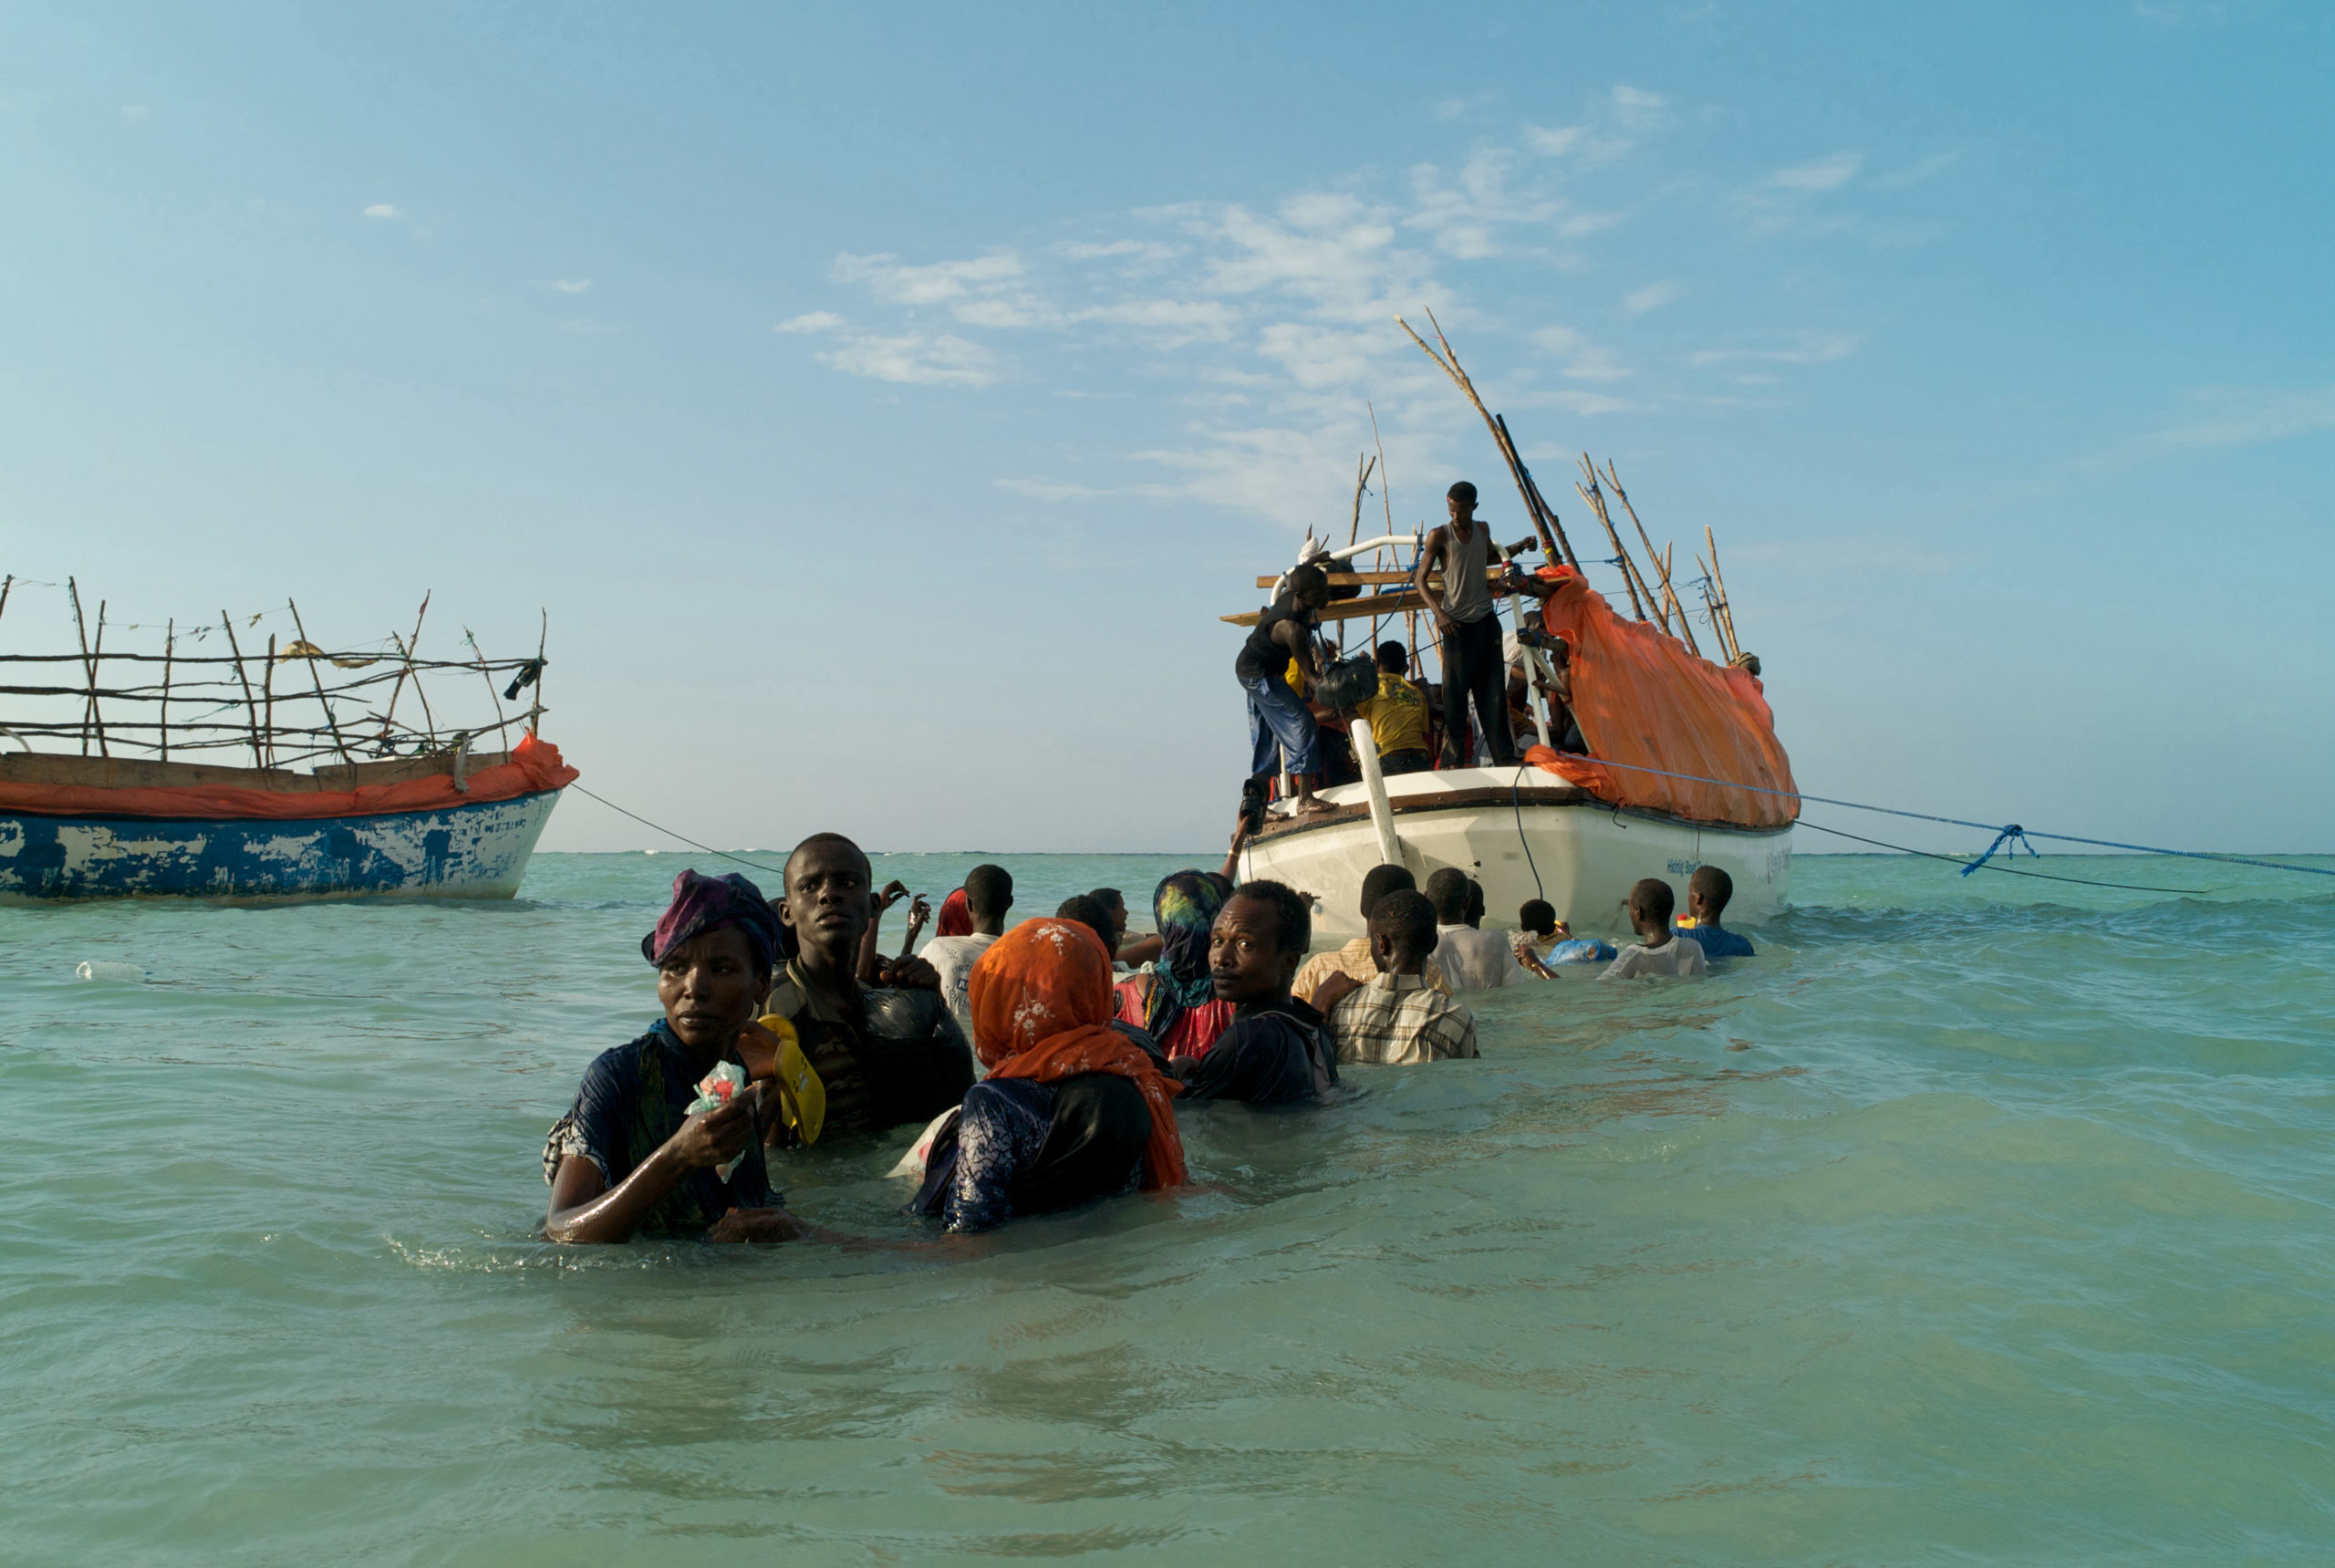 Somali refugees departing Shimbiro Beach to board  smuggler's boats to Yemen. From the series  A Million Shillings - Escape from Somalia